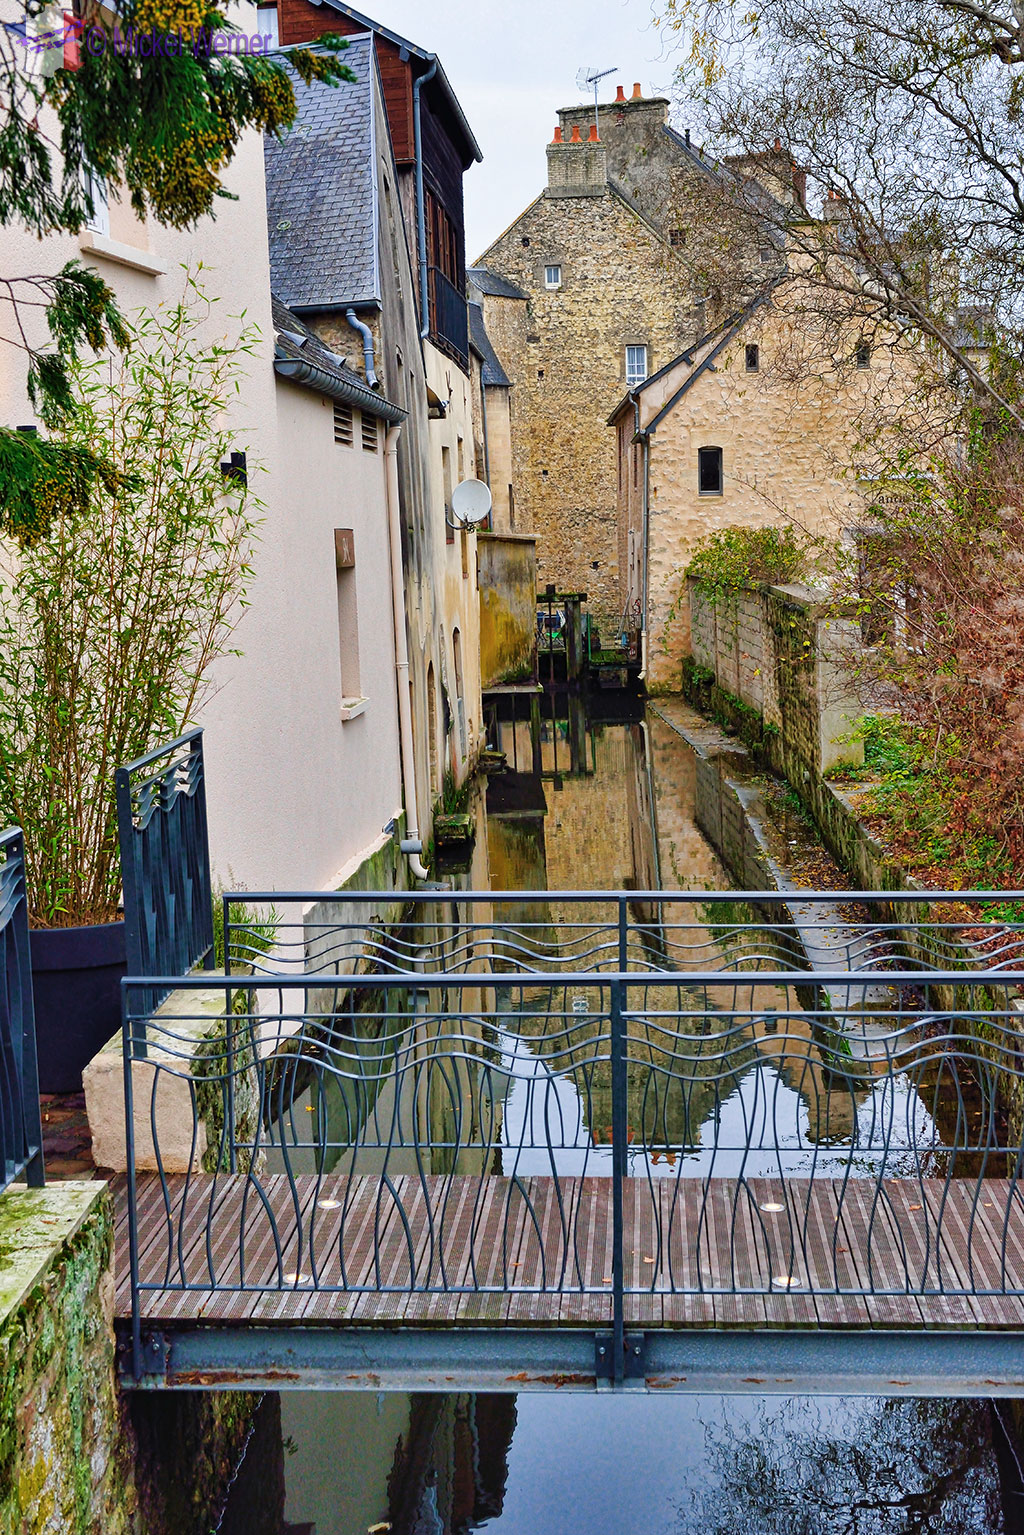 The Aure river in the city centre of Bayeux